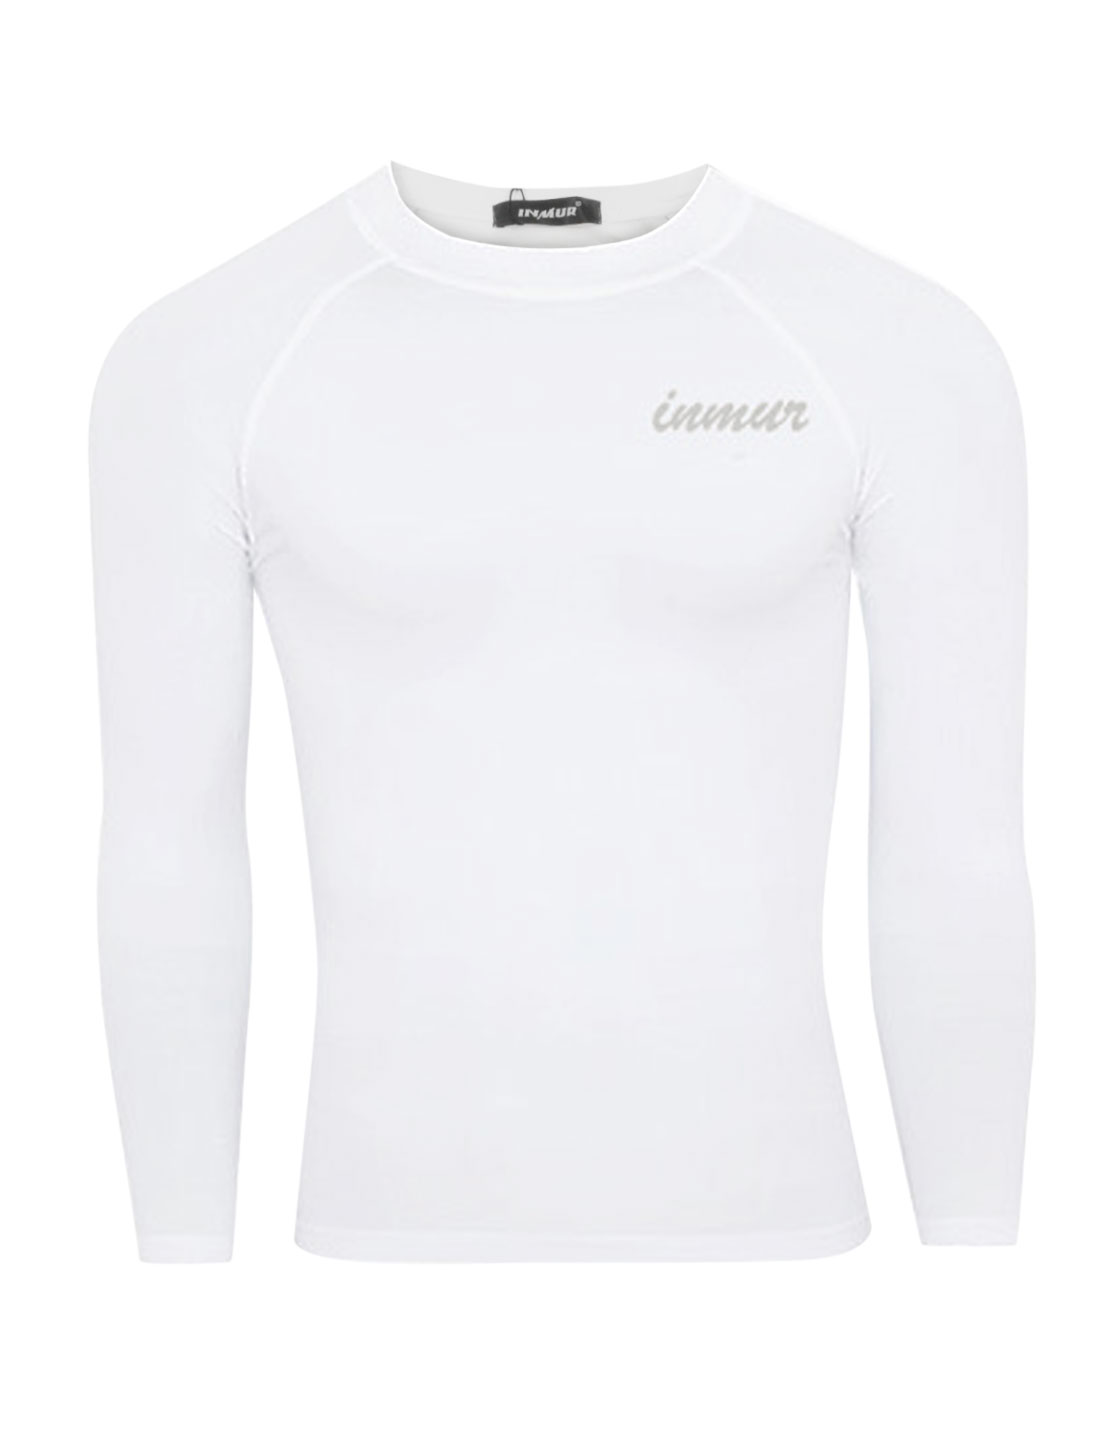 Men Round Neck Letters Detail Soft Sport Shirt White M